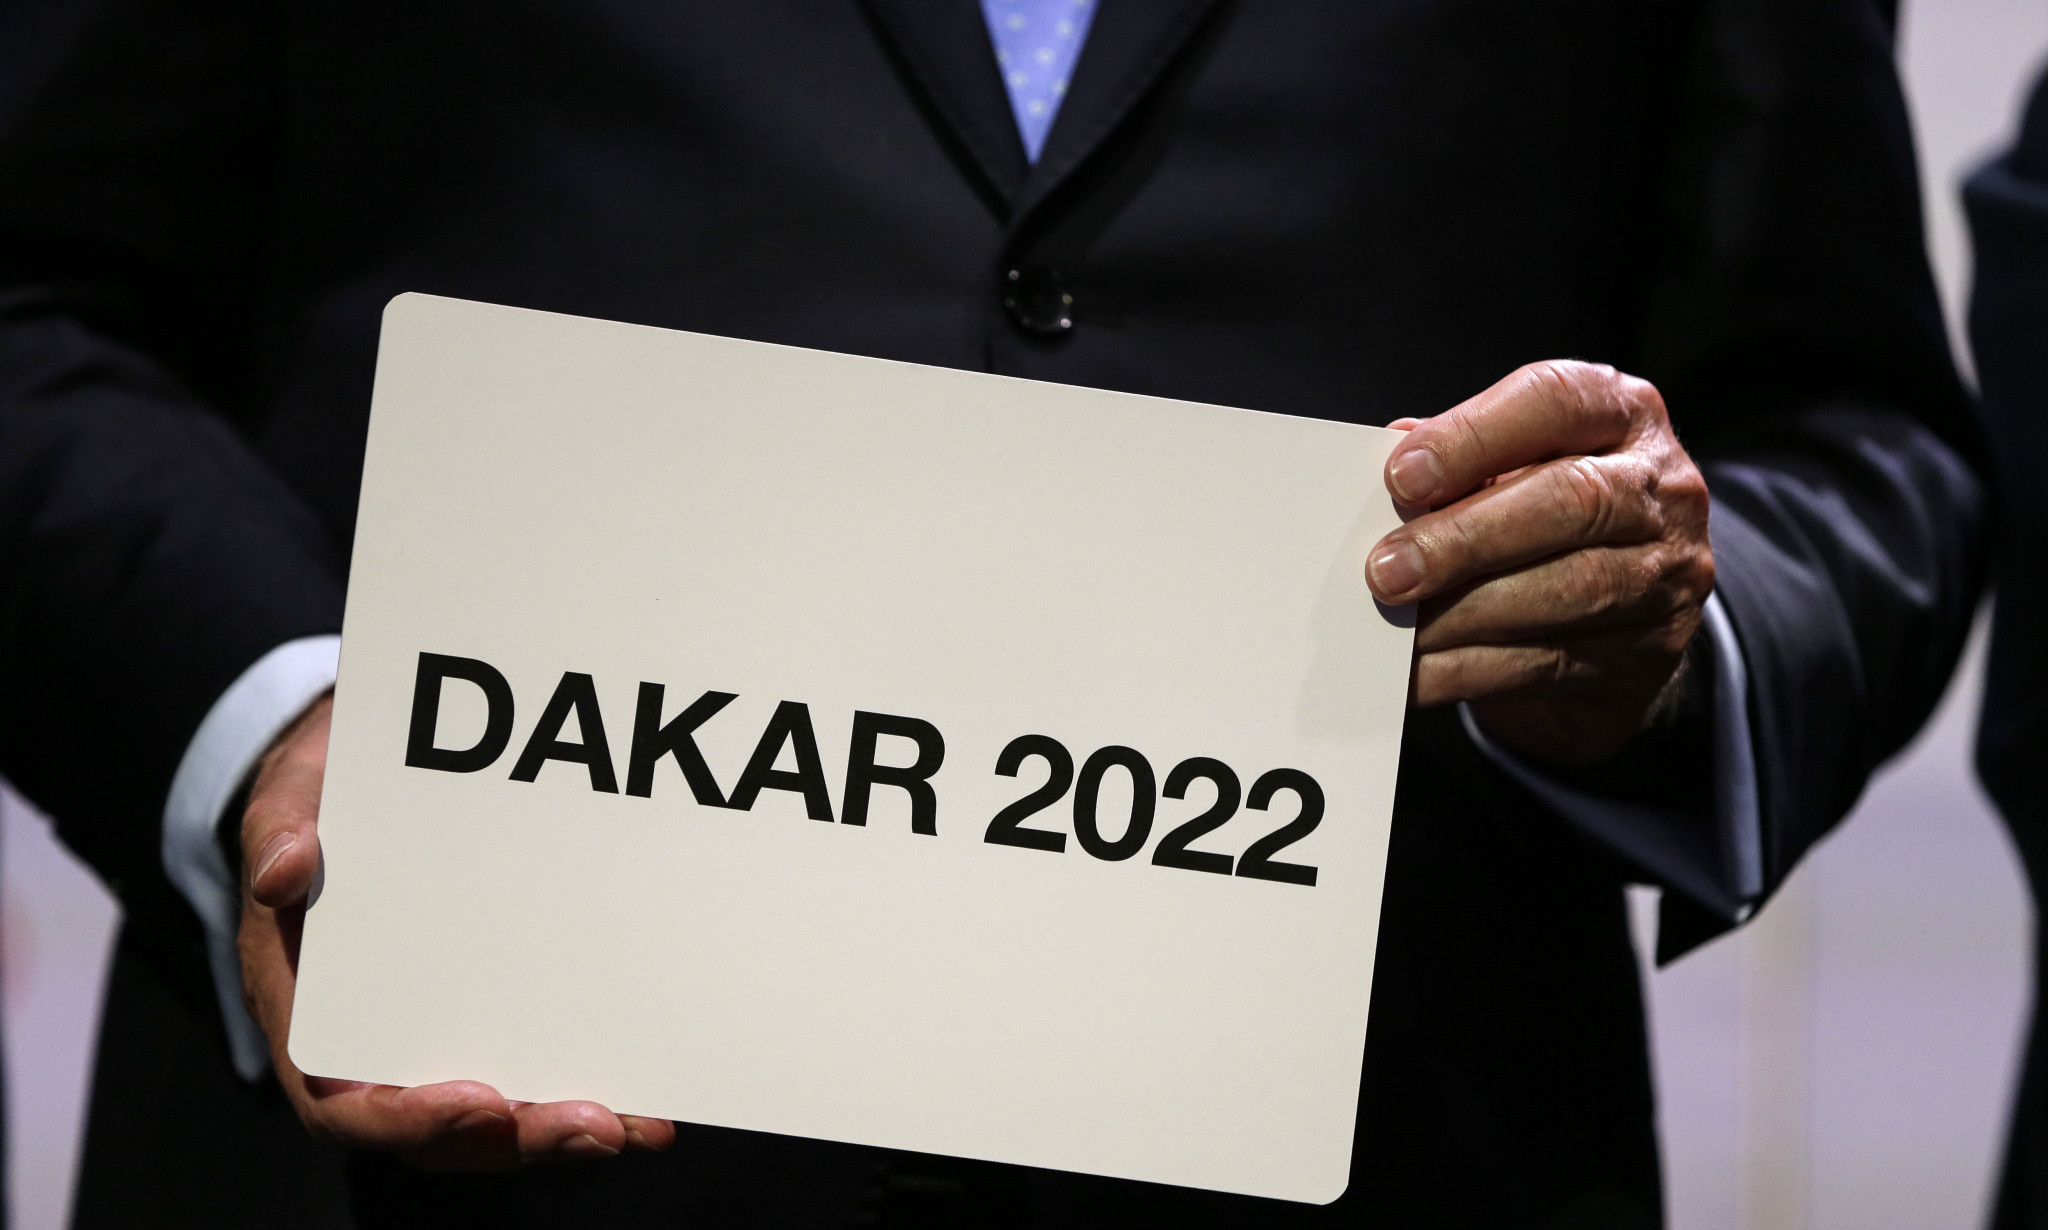 Dakar 2022 were awarded the Summer Youth Olympic Games in 2018, but Government funding is yet to be released ©Getty Images